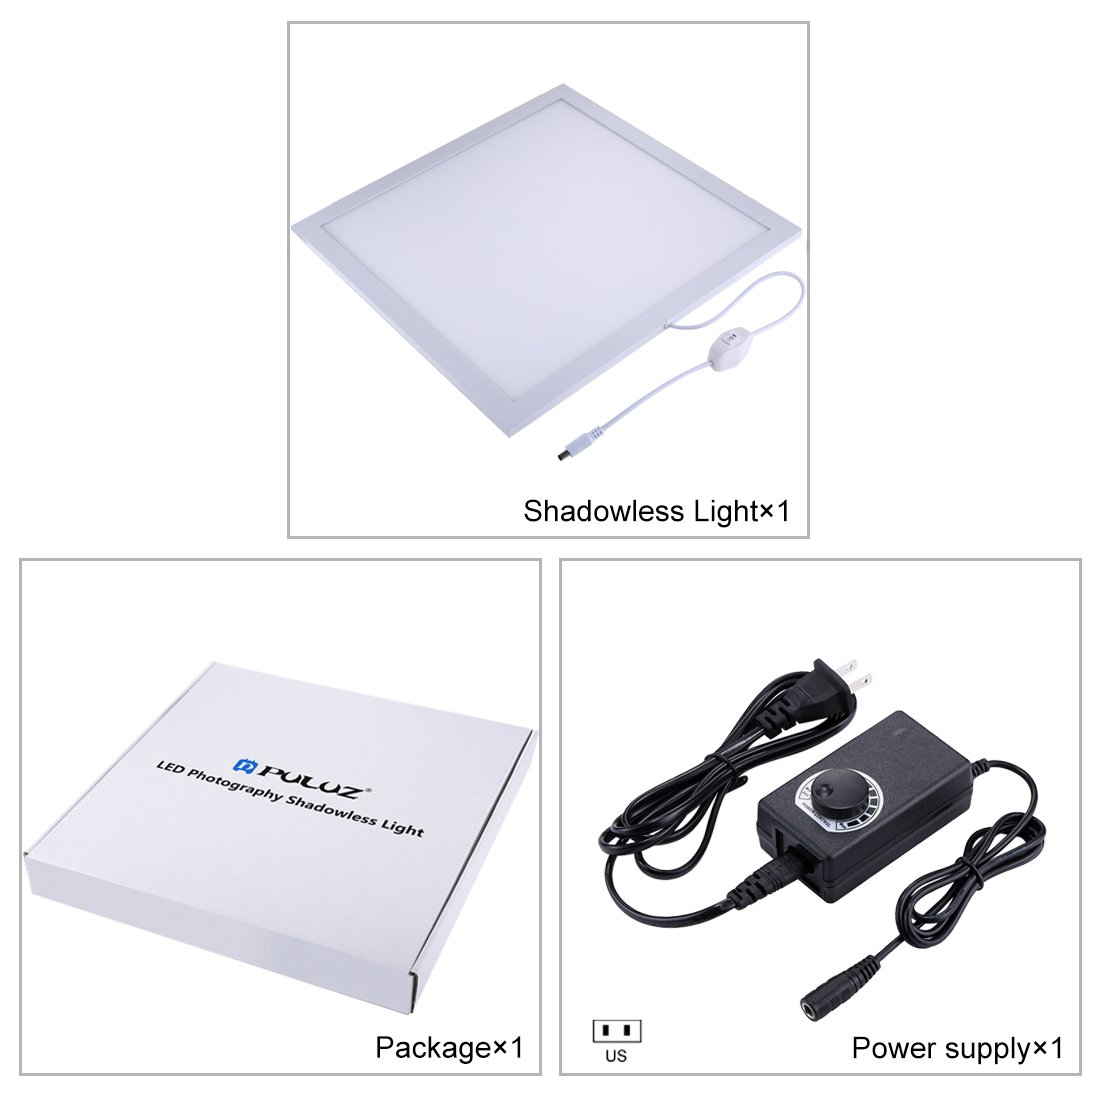 PULUZ Photo Studio Fill Light LED Shadowless Light Panel 15in X 15in / 38 x 38 cm Dimmable Photography Softbox Bottom Light for Food Jewelry Cosmetic Crafts US Plug by PULUZ (Image #6)